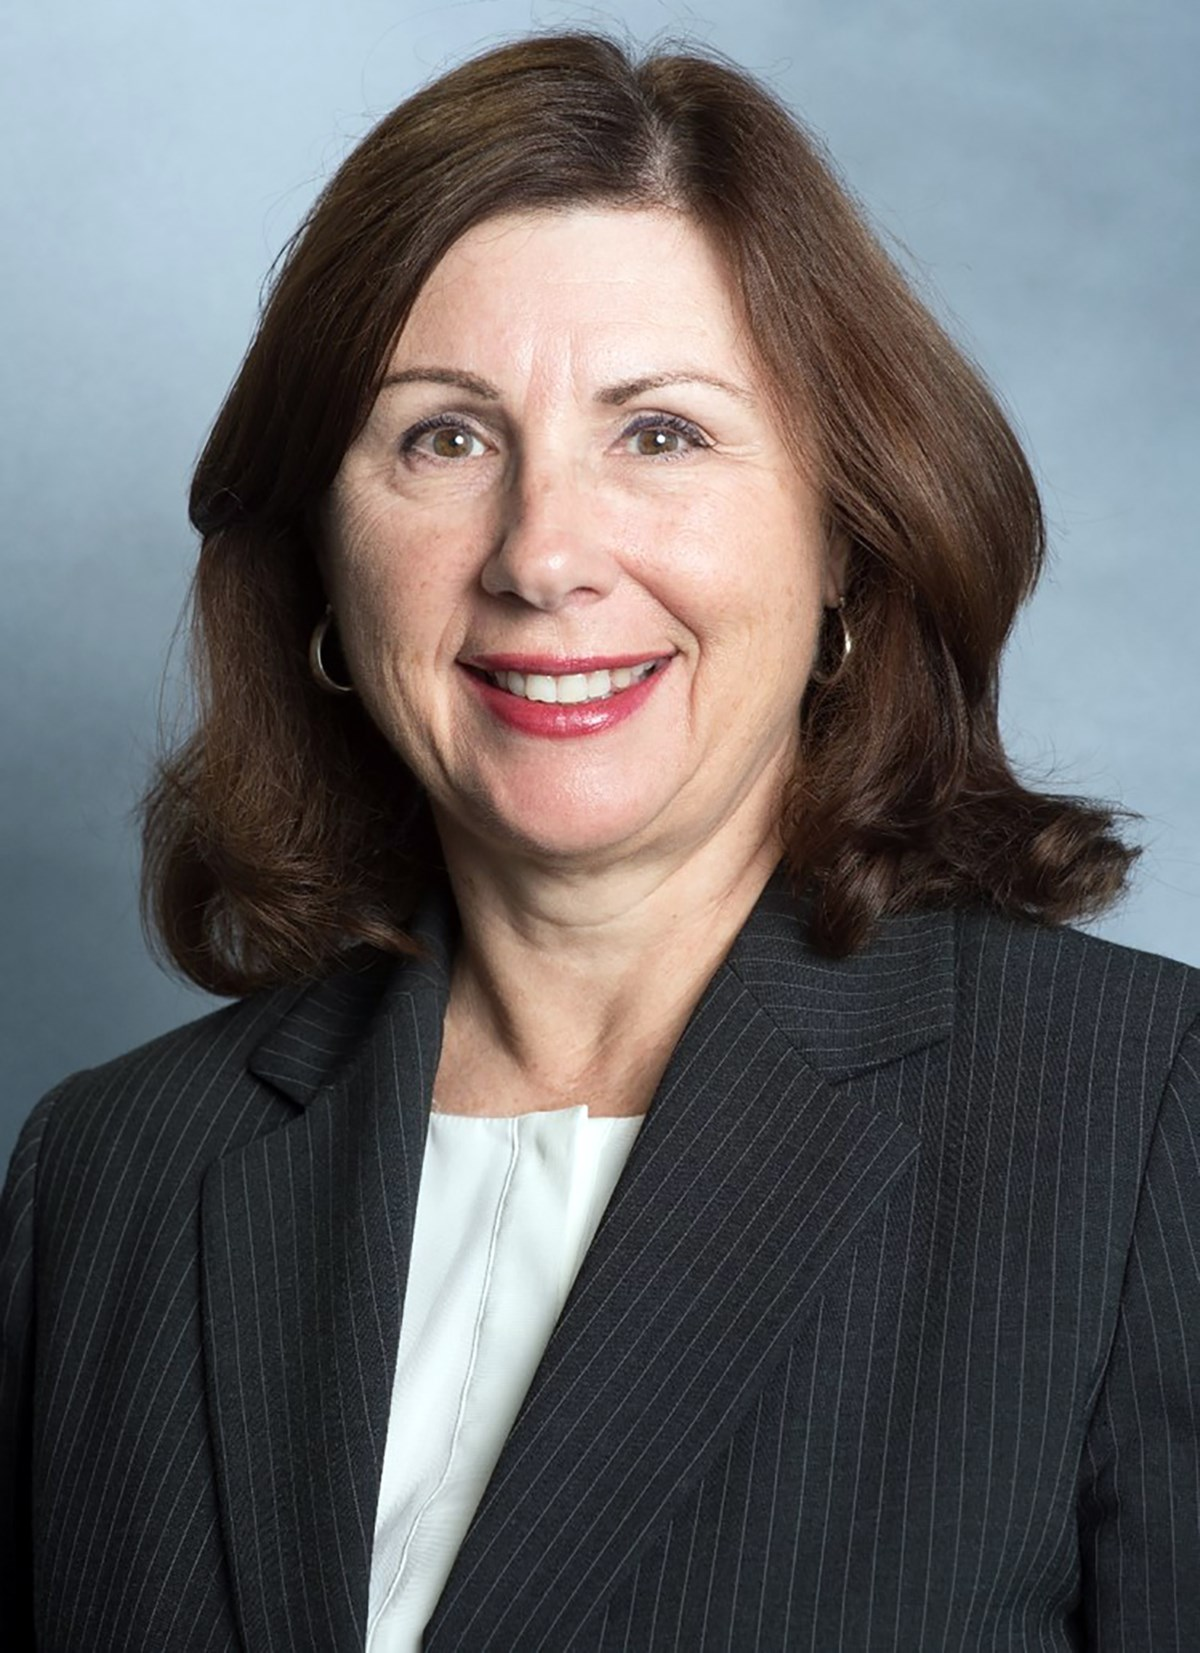 Arlene Parquette is the Associate Vice Chancellor, Industry Partnerships & Economic Development at UMass Lowell.